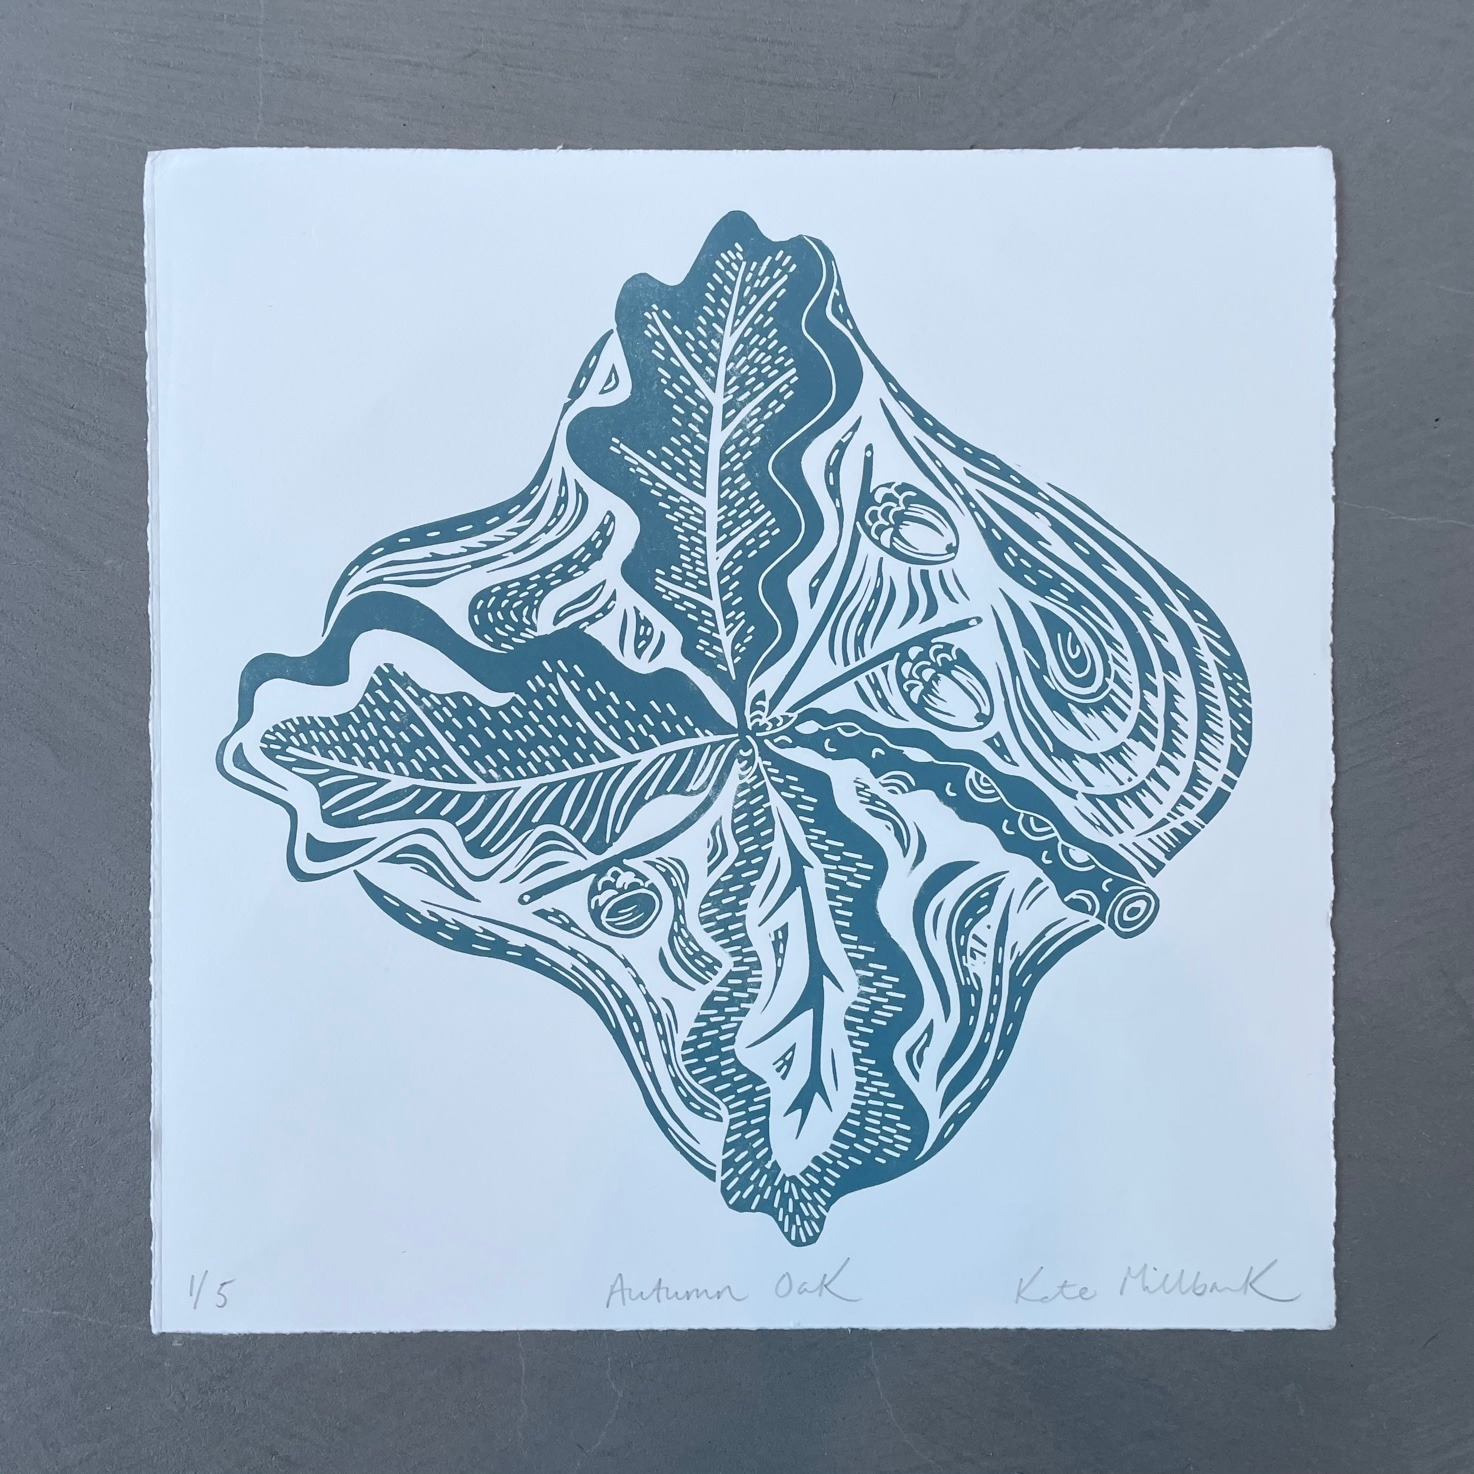 Autumn Oak Lino Print by Kate Millbank